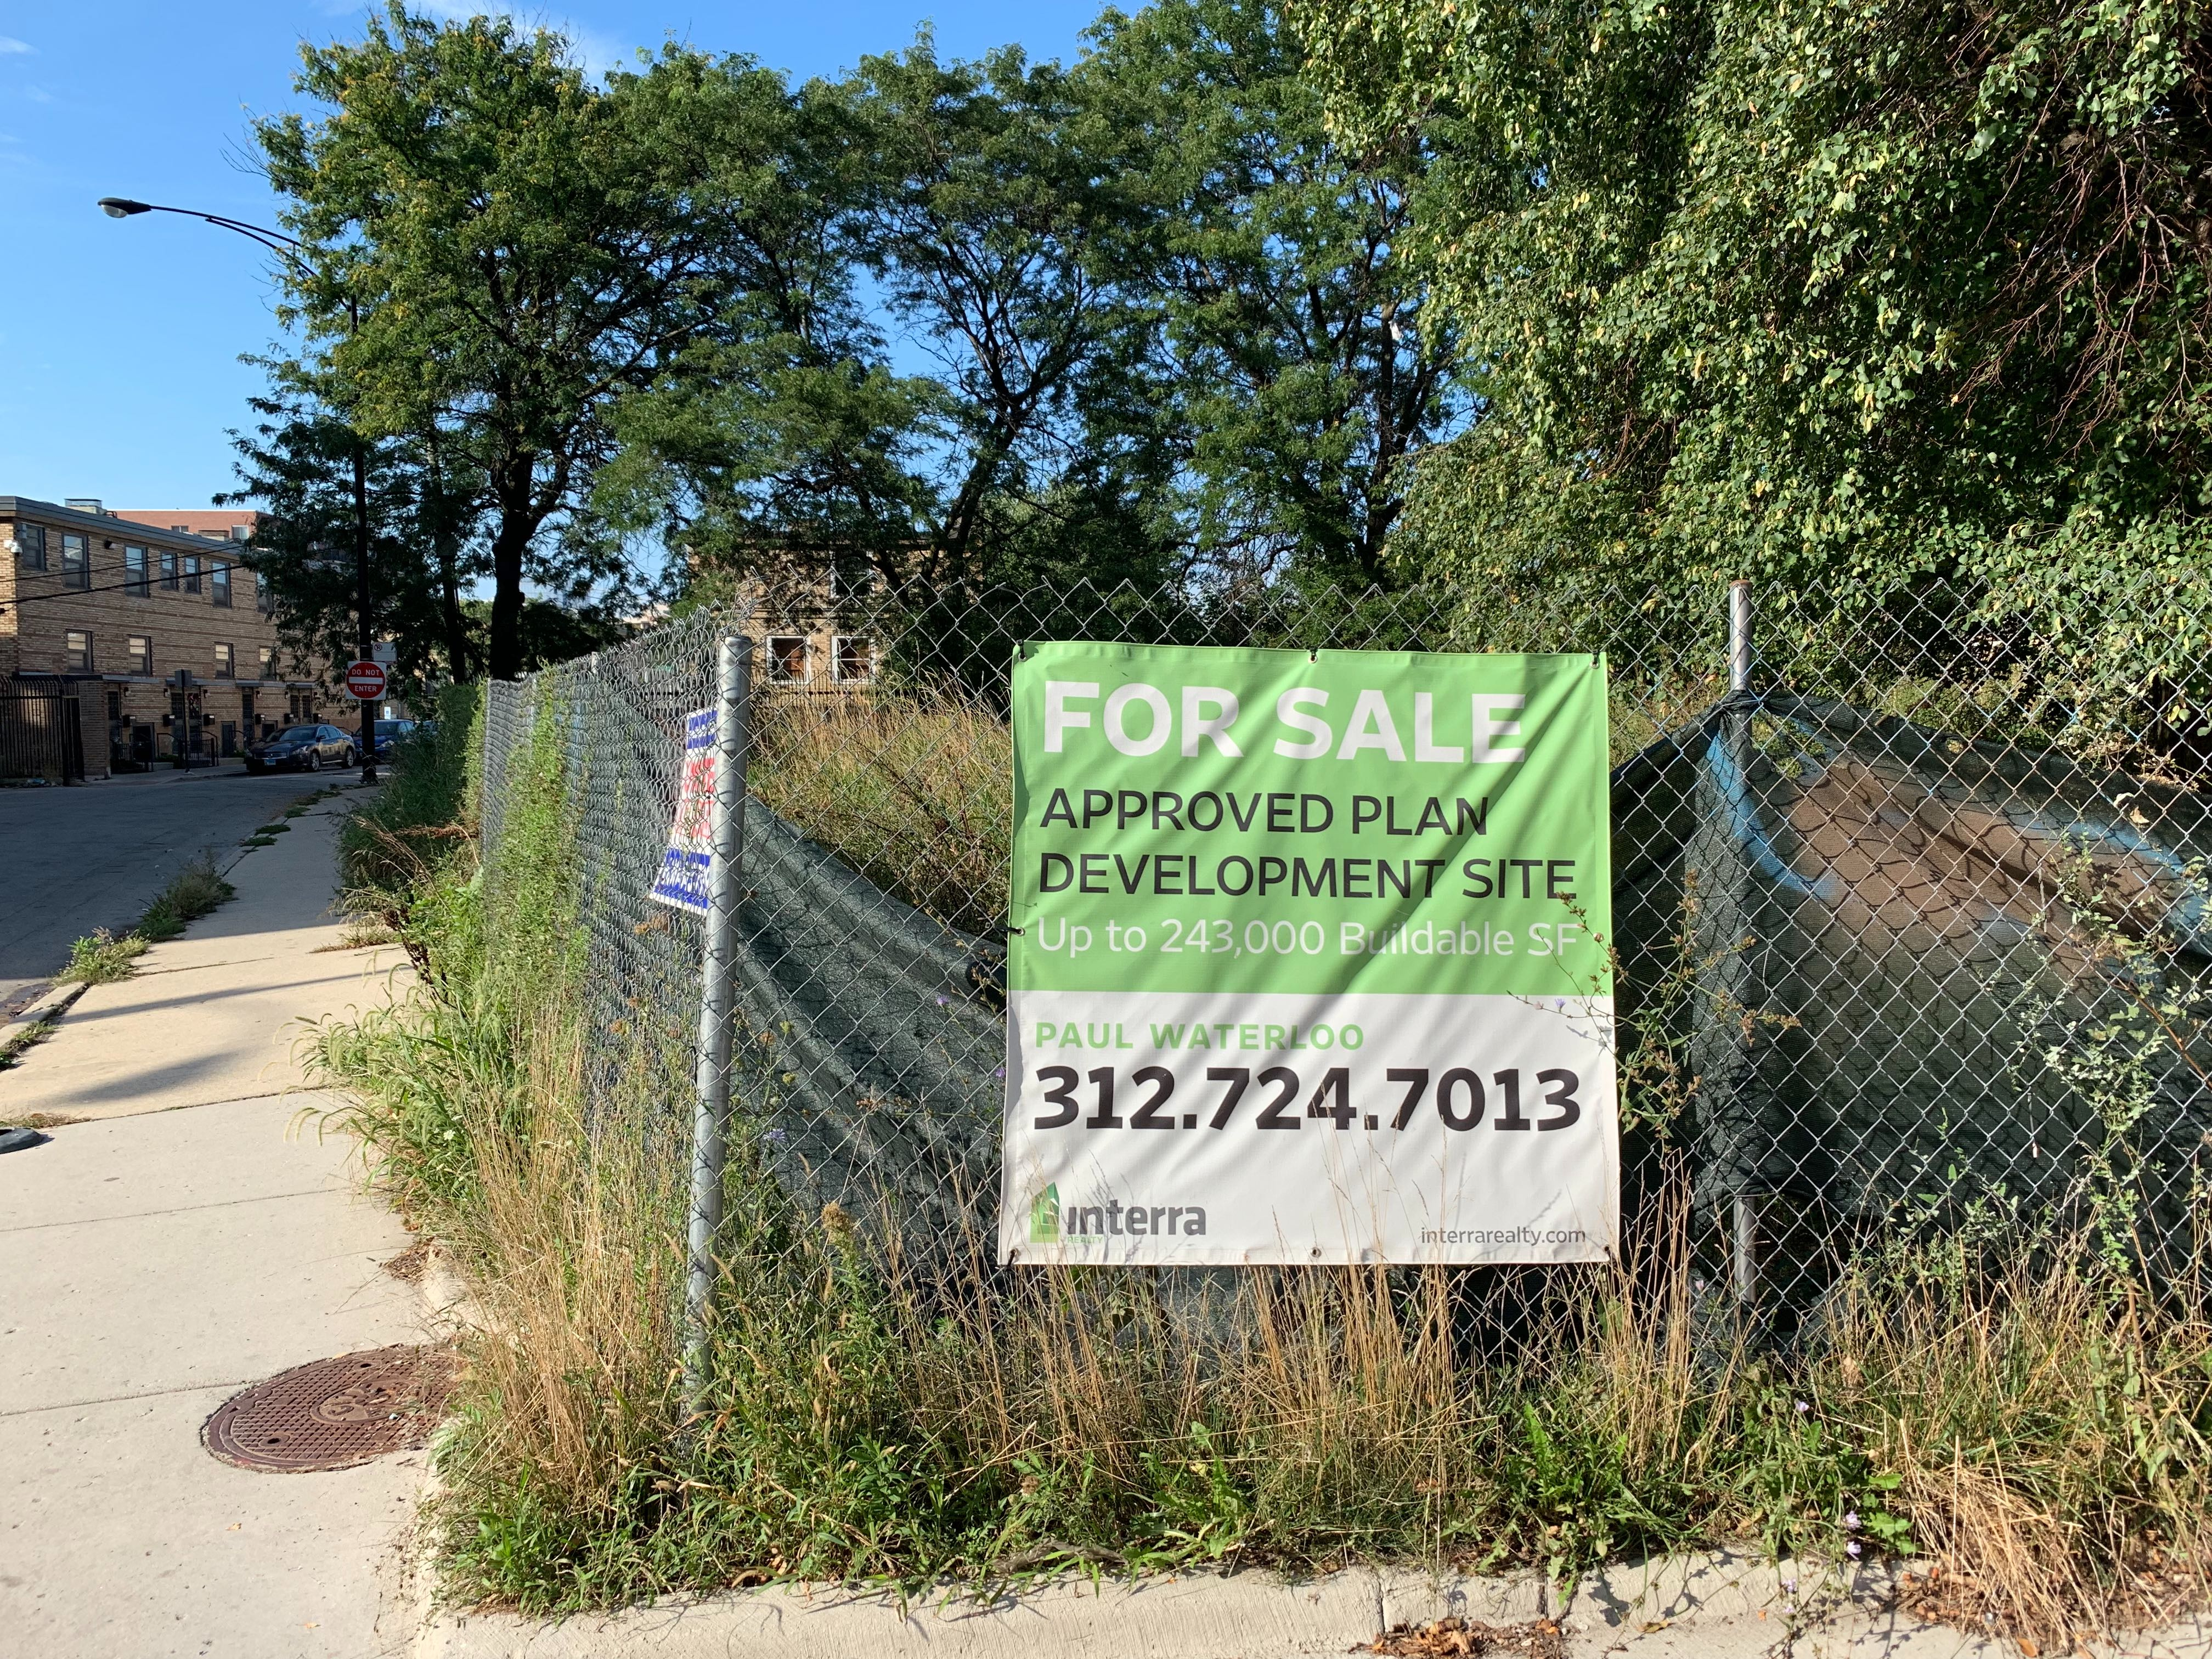 """A city lot filled with trees and bushes surrounded by a chain link fence with a """"for sale"""" sign."""